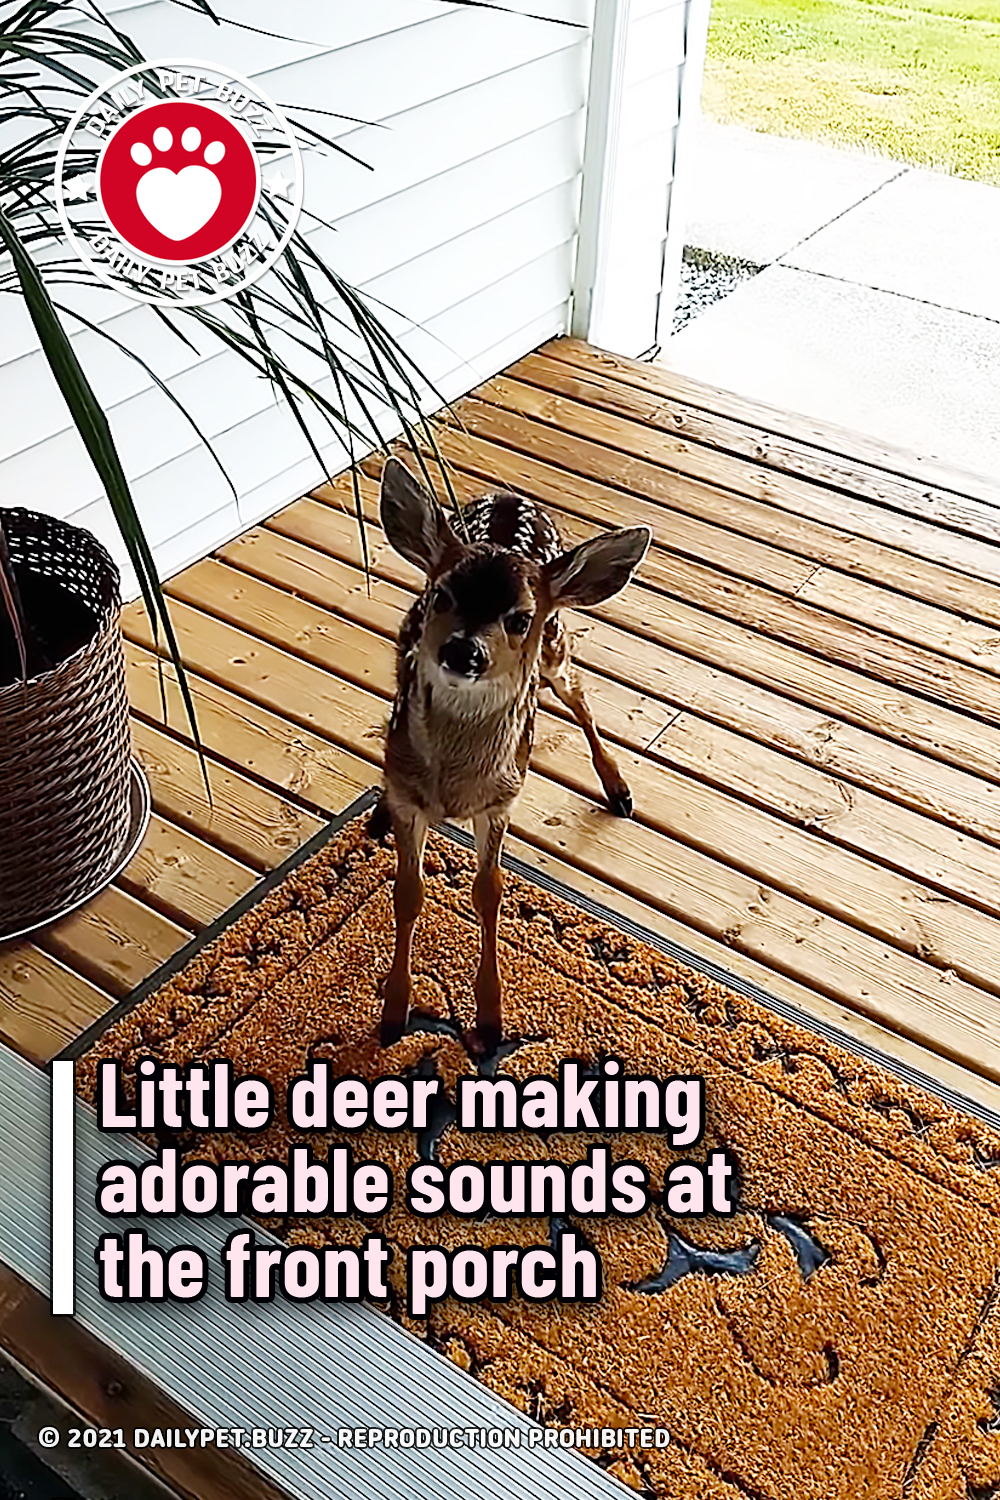 Little deer making adorable sounds at the front porch